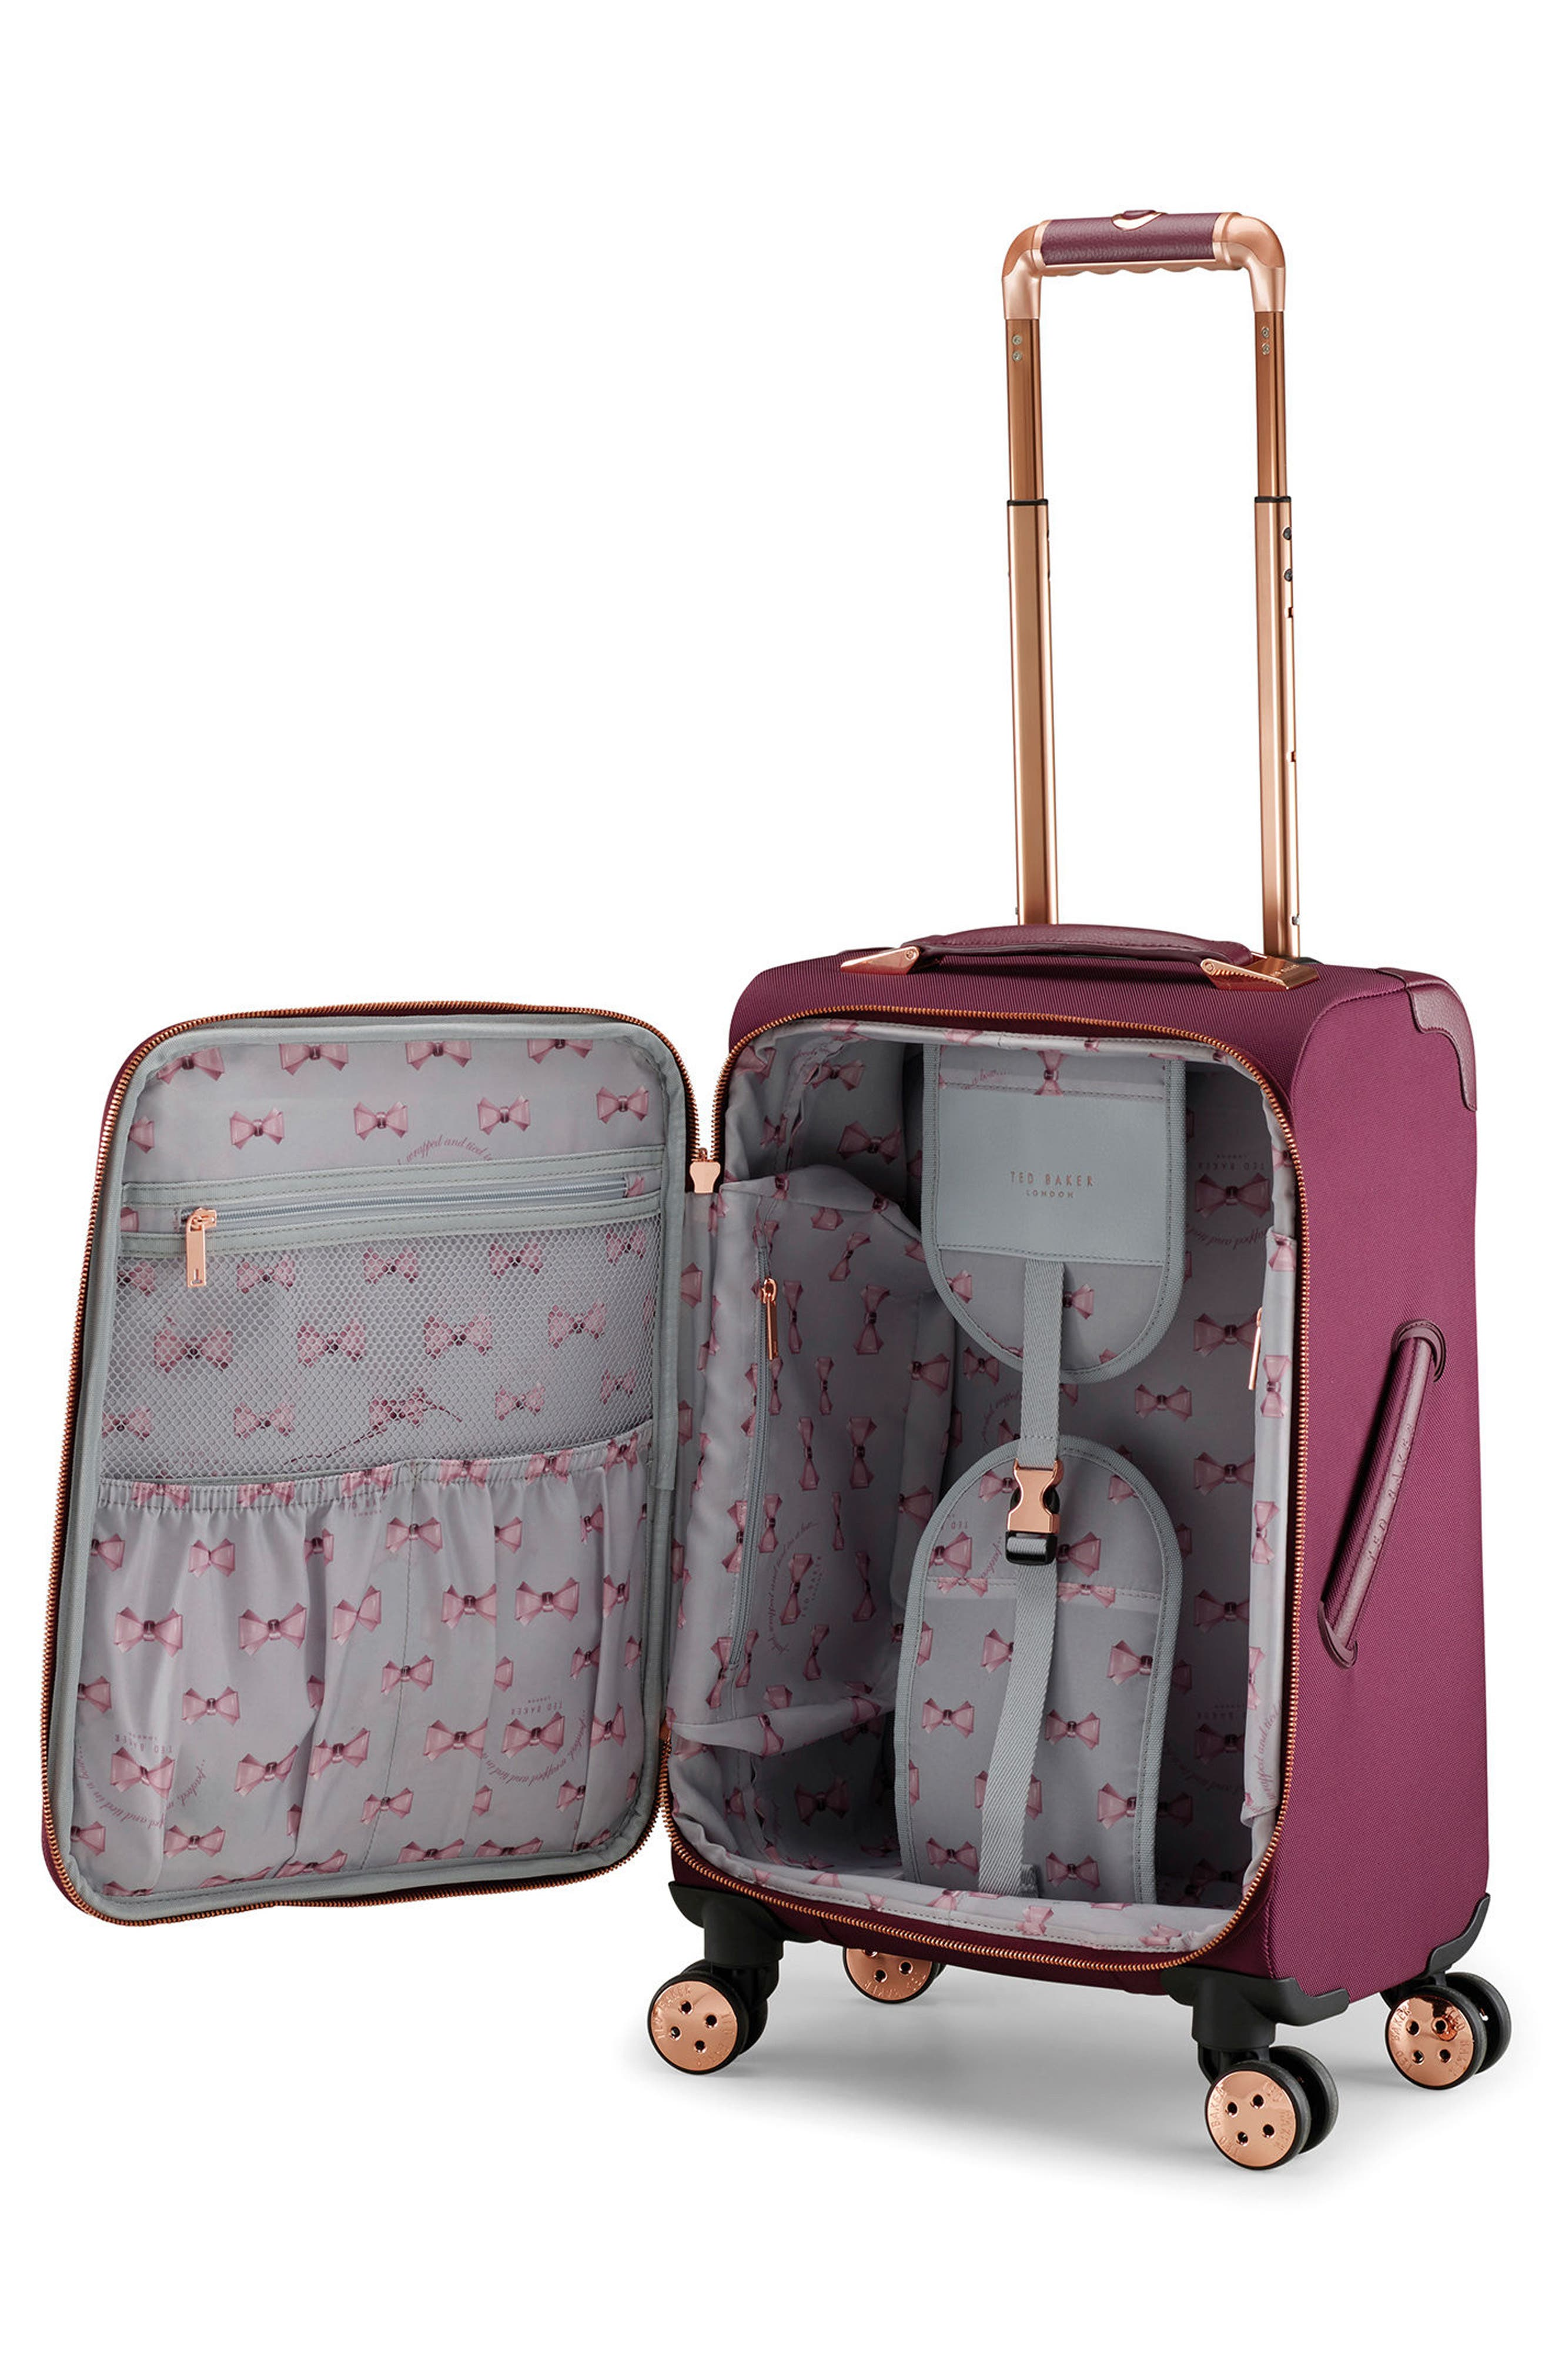 20c2ba071abe3 Ted Baker London Carry-On Luggage